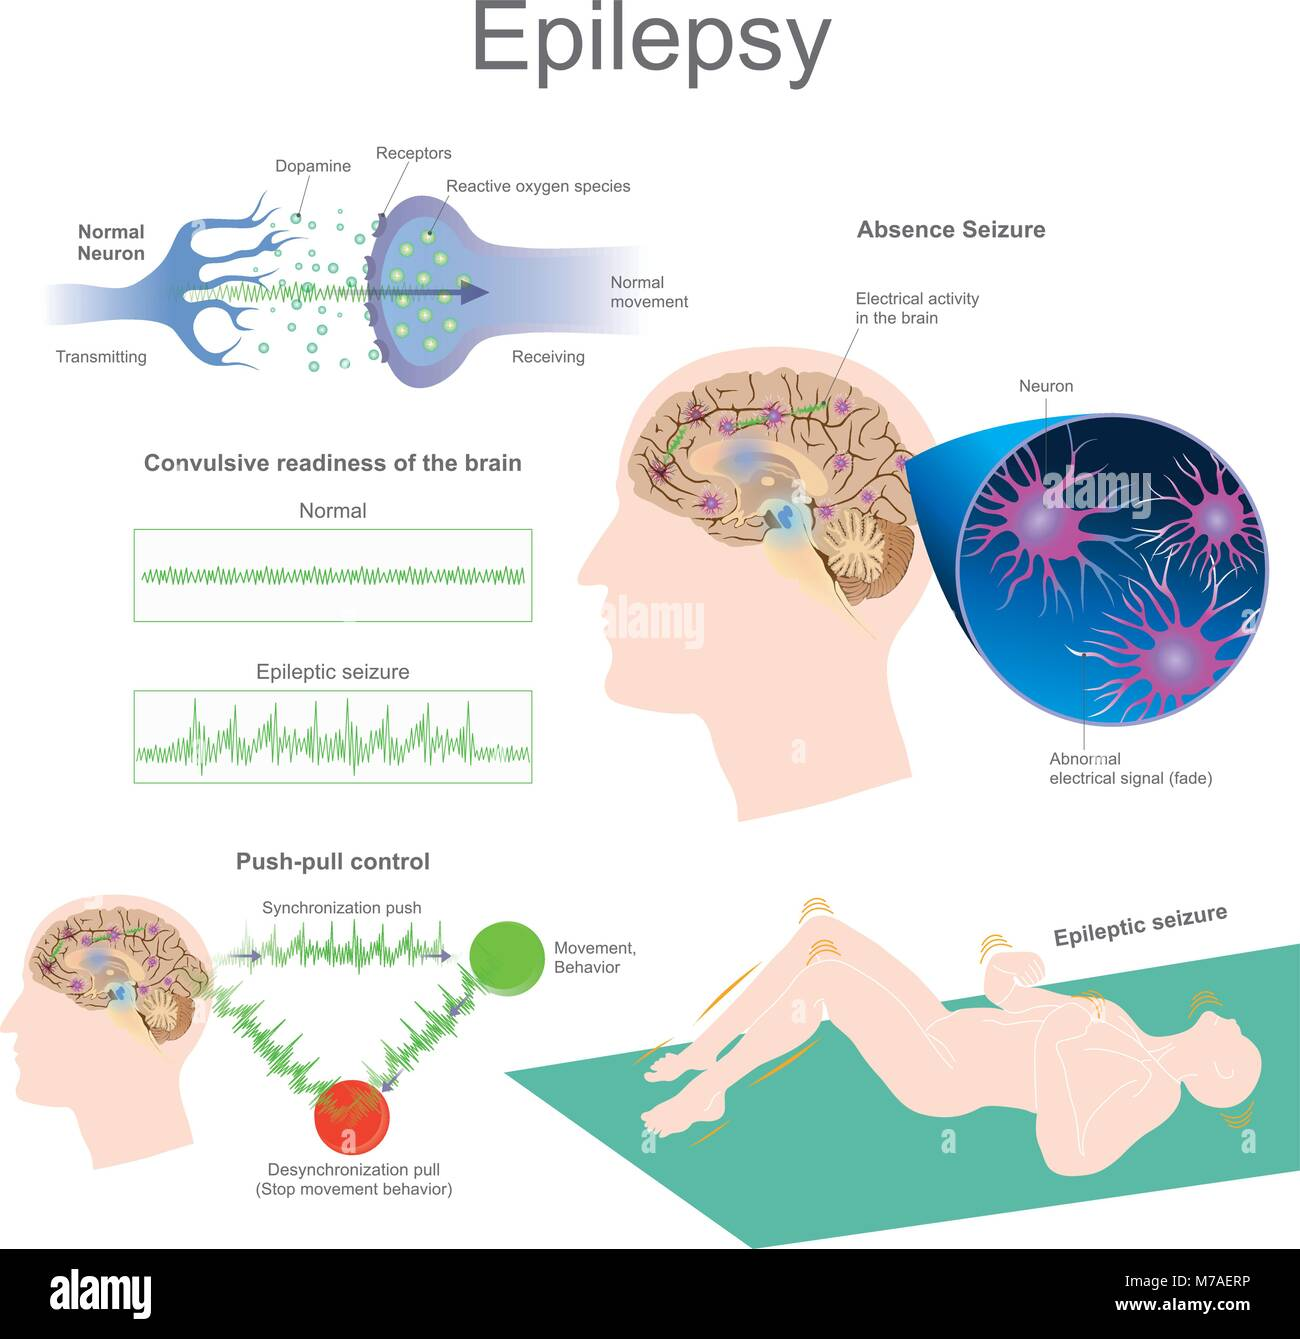 Epilepsy is a group of neurological disorders ...